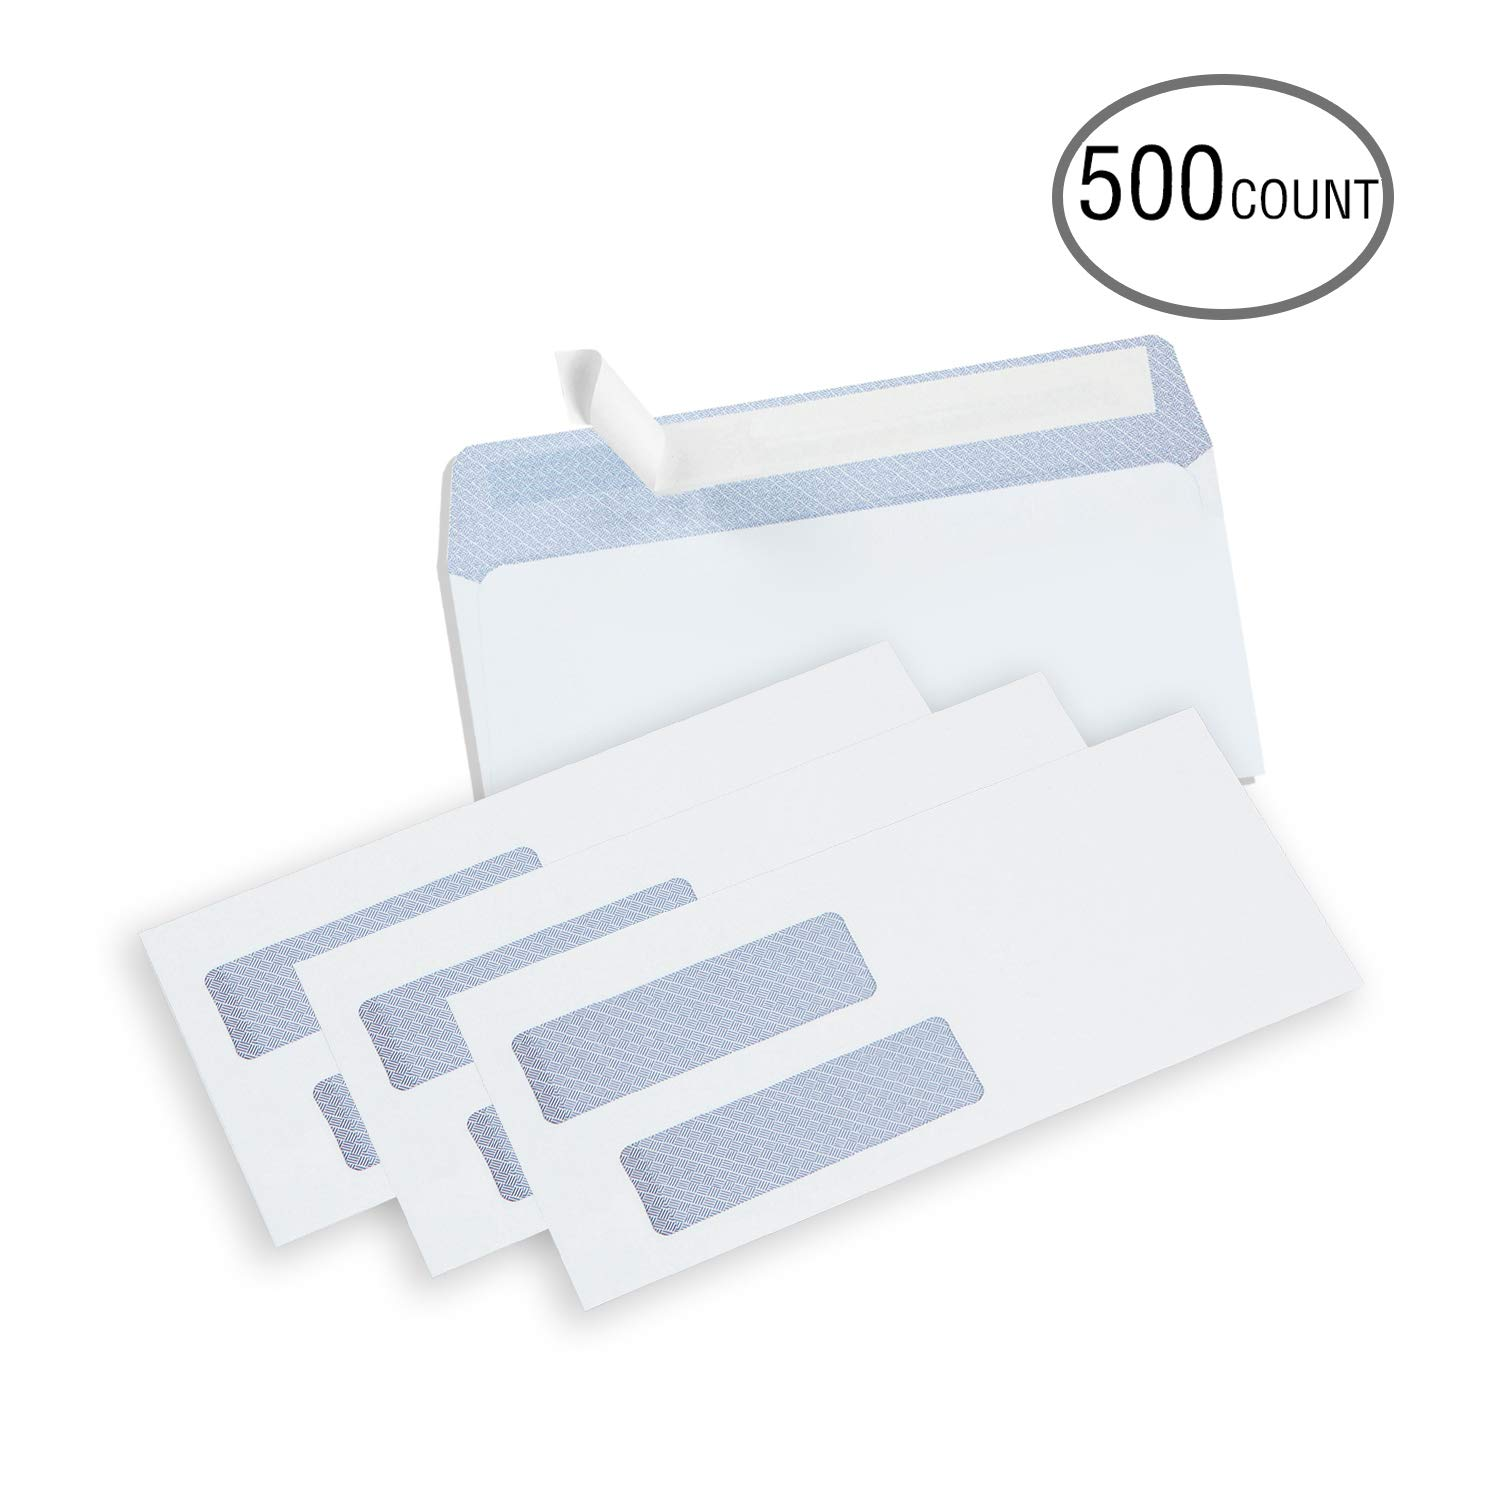 Case of 24 Boxes, 500 Packs per Box, Ohuhu #8 Double Window Envelope SELF Seal Adhesive Tinted Security Envelopes Quickbooks Check, Business Invoice Check, Documents Secure Mailing, 3 5/8'' x 8 11/16'' by Ohuhu